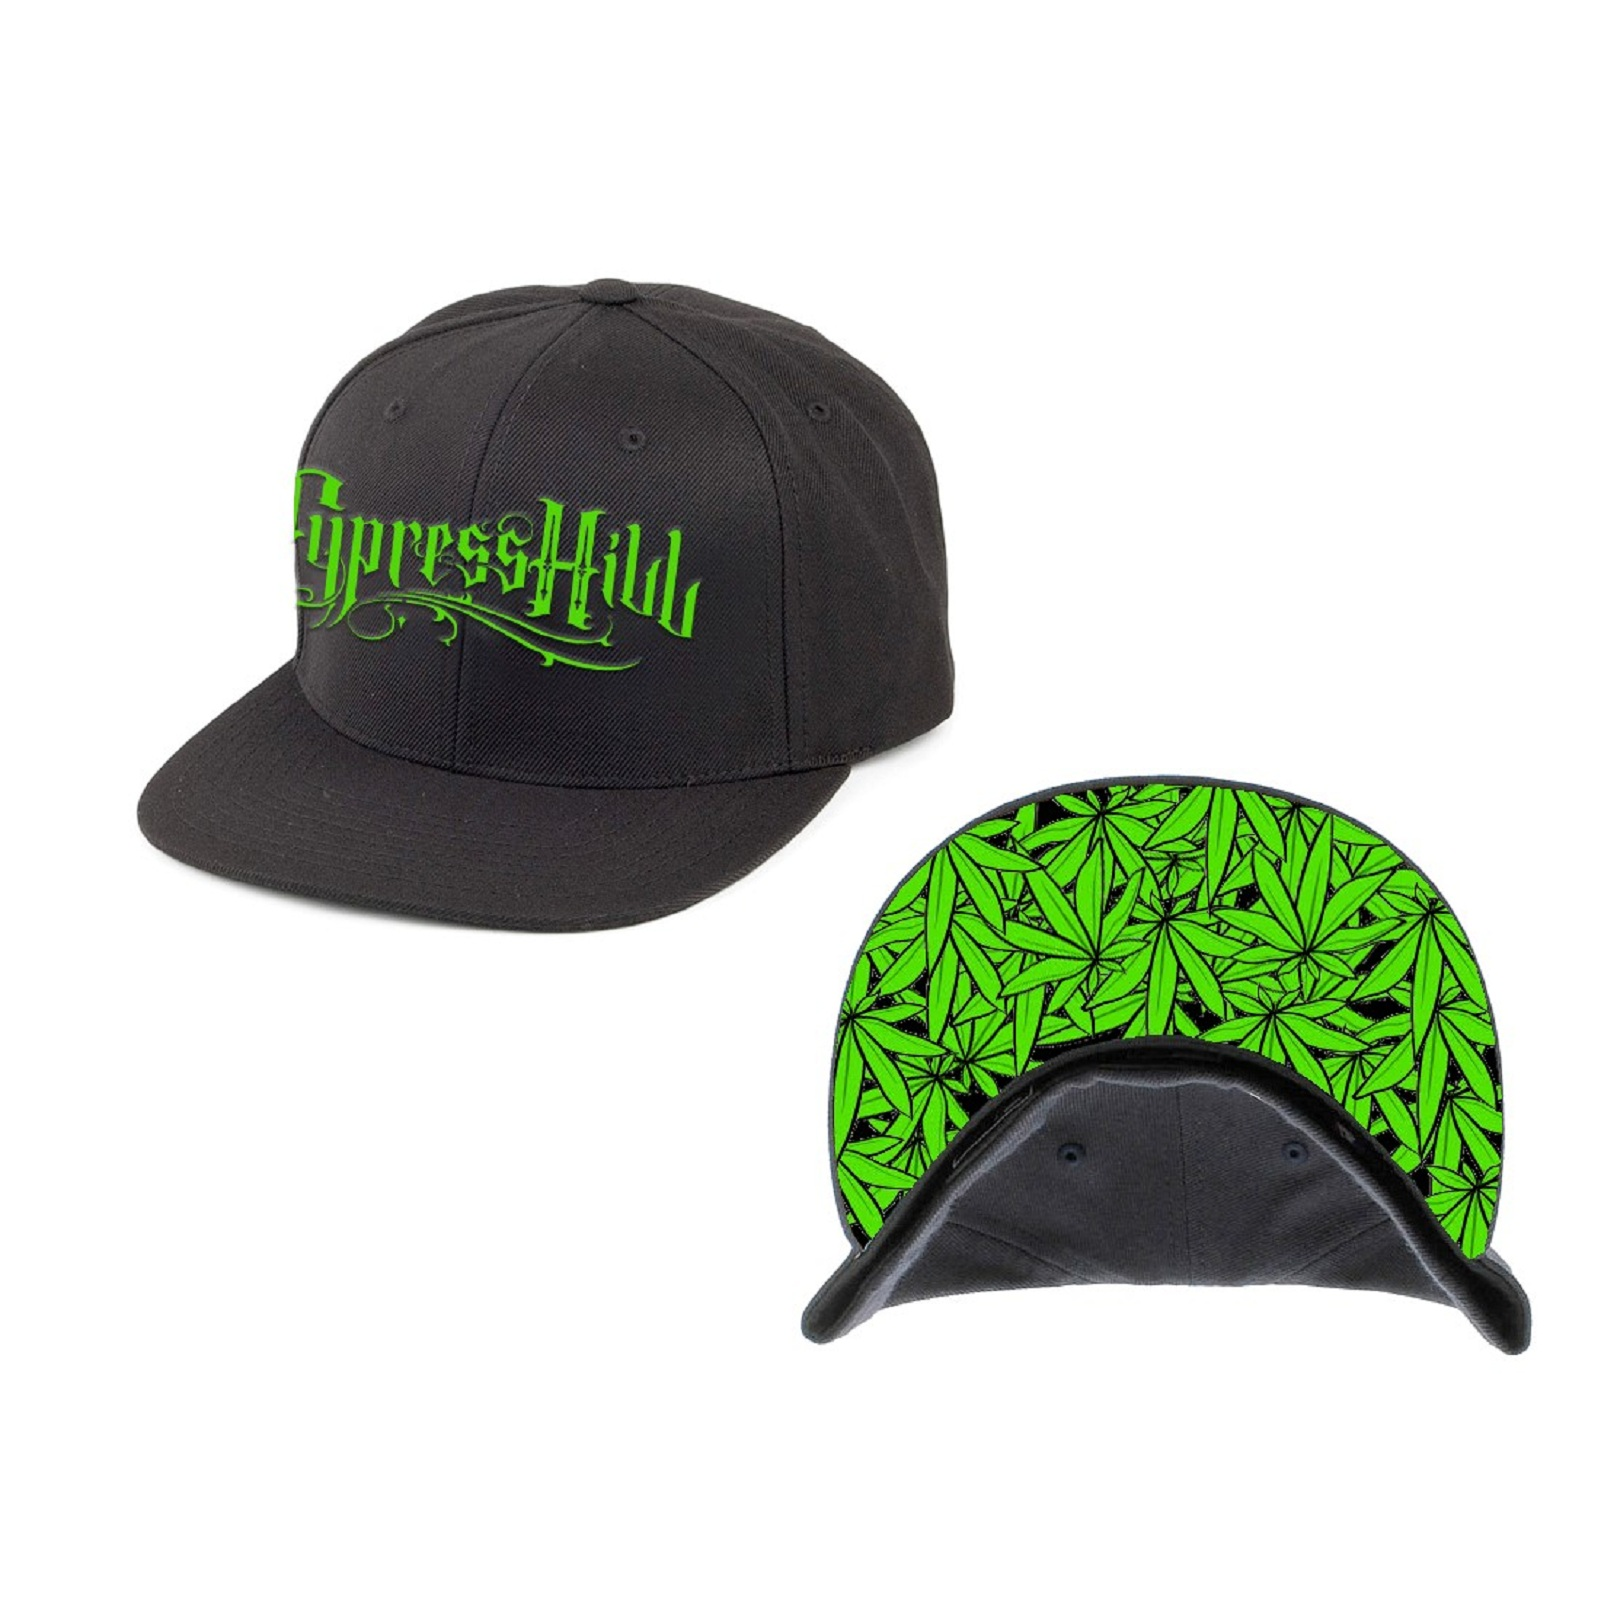 7bd00e46e6c Cypress Hill Hats Related Keywords   Suggestions - Cypress Hill Hats ...